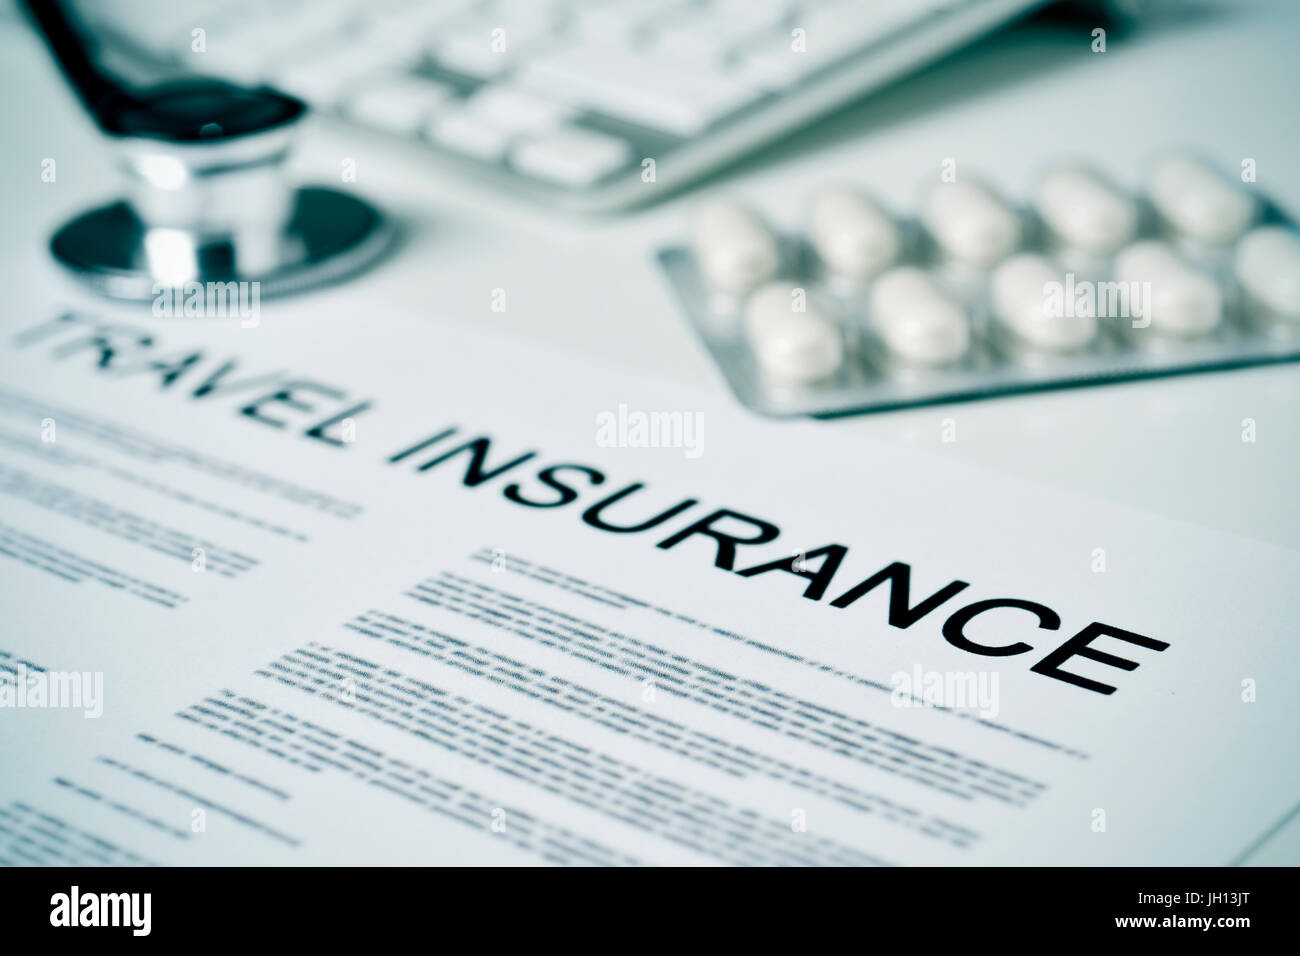 closeup of a travel insurance policy on a doctors office, next to a computer keyboard, a stethoscope and some pills - Stock Image